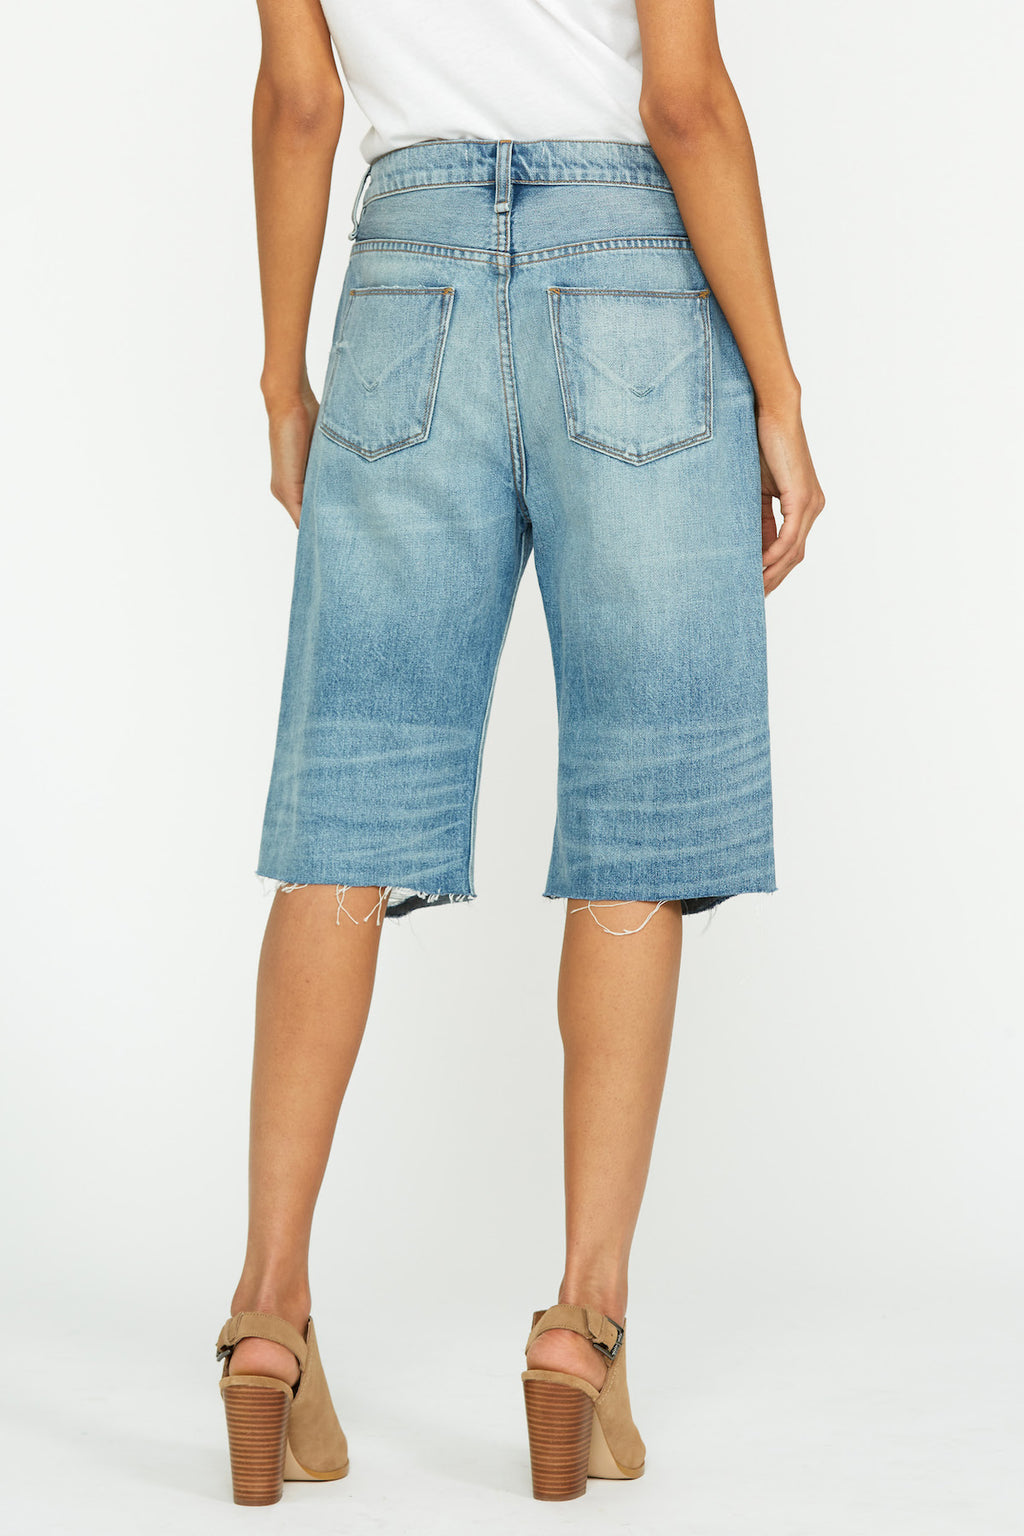 Sloane Baggy Long Short